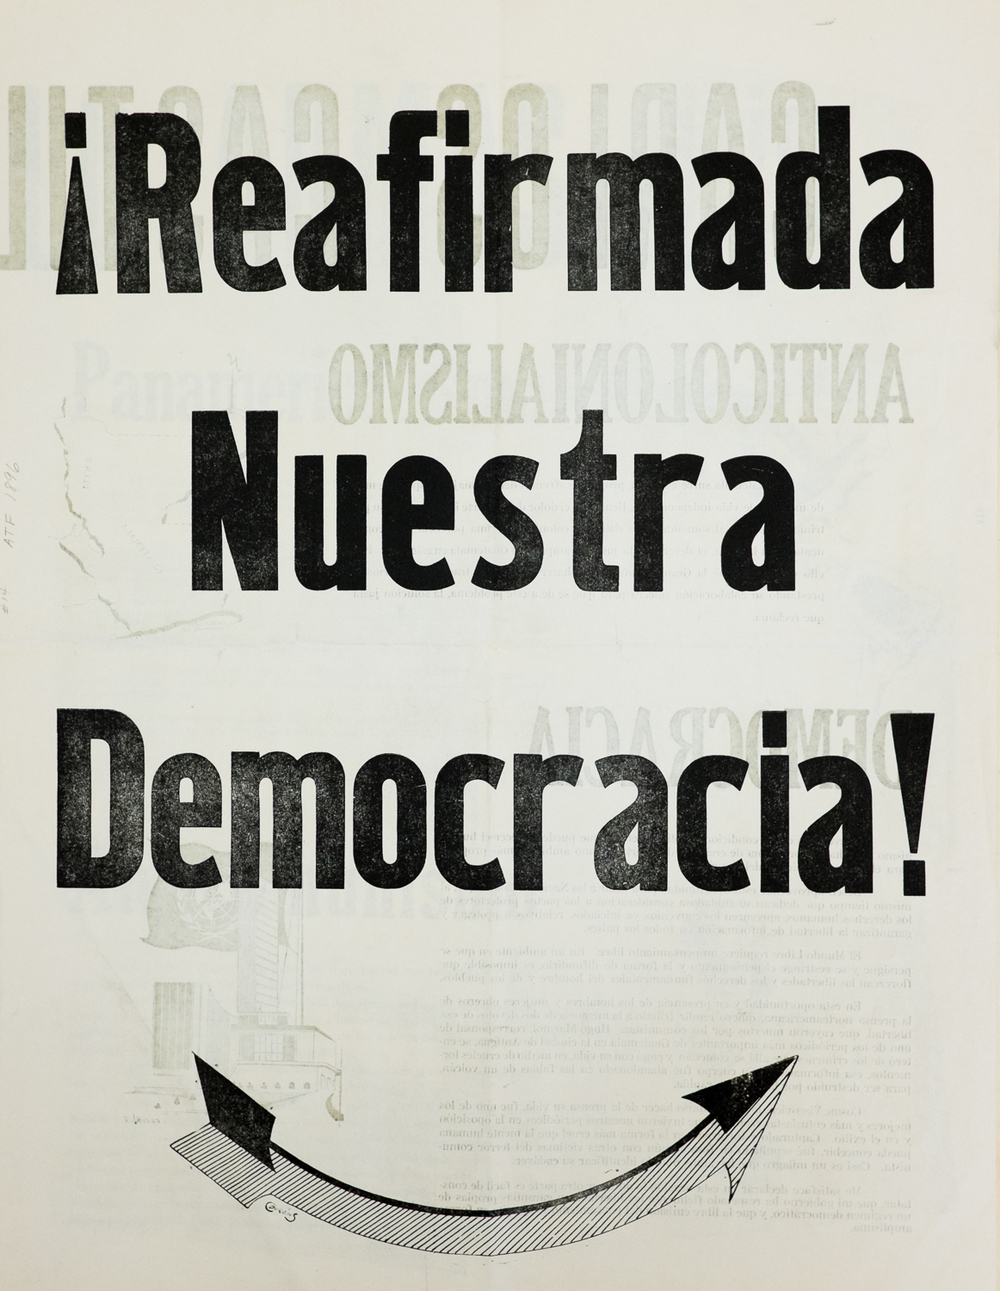 ¡Reafimada nuestra democracia! , Newsprint Broadside, 1 954